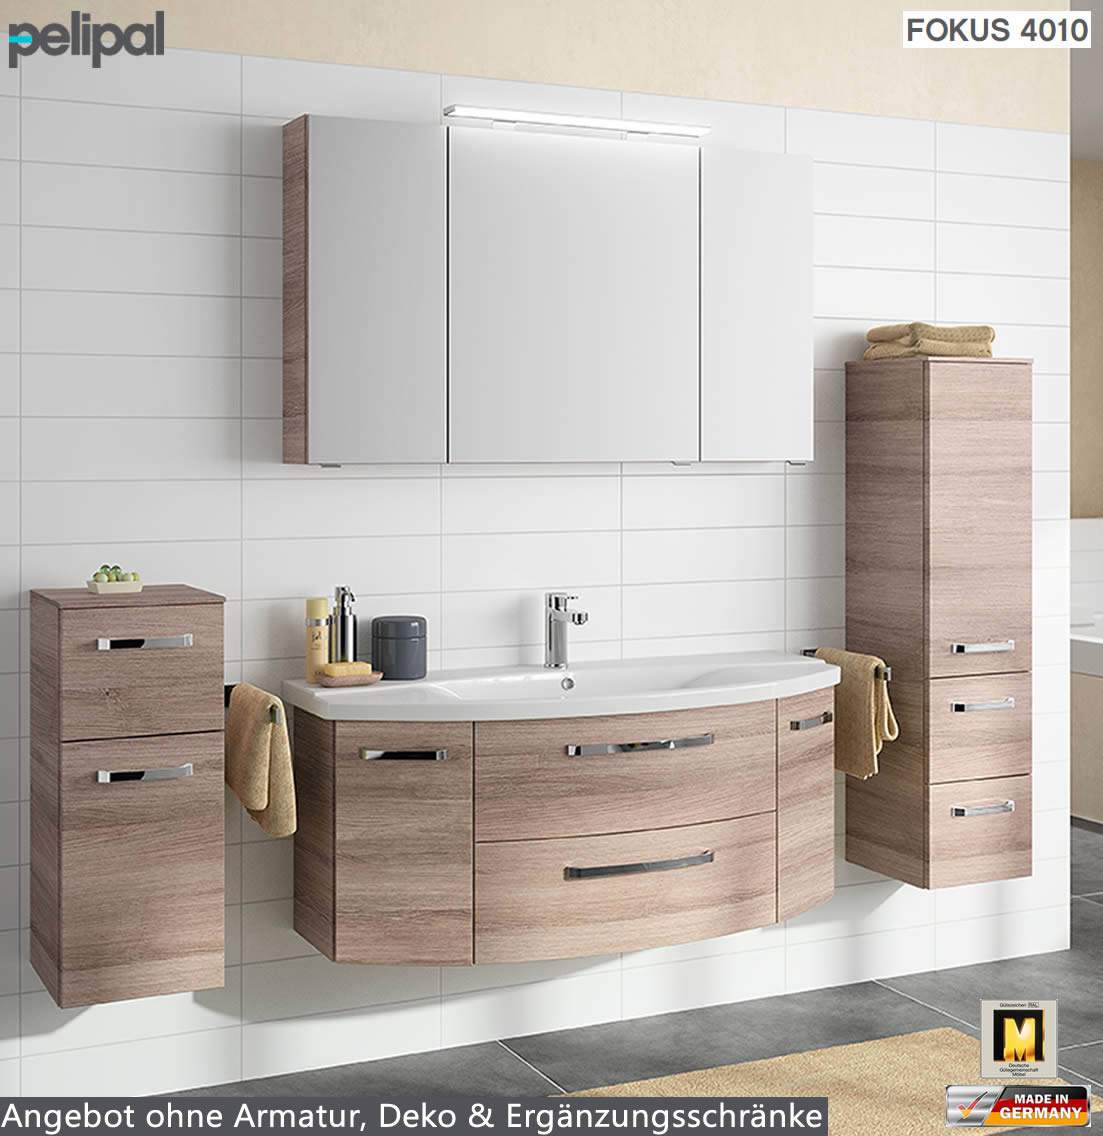 pelipal badm bel set eckventil waschmaschine. Black Bedroom Furniture Sets. Home Design Ideas